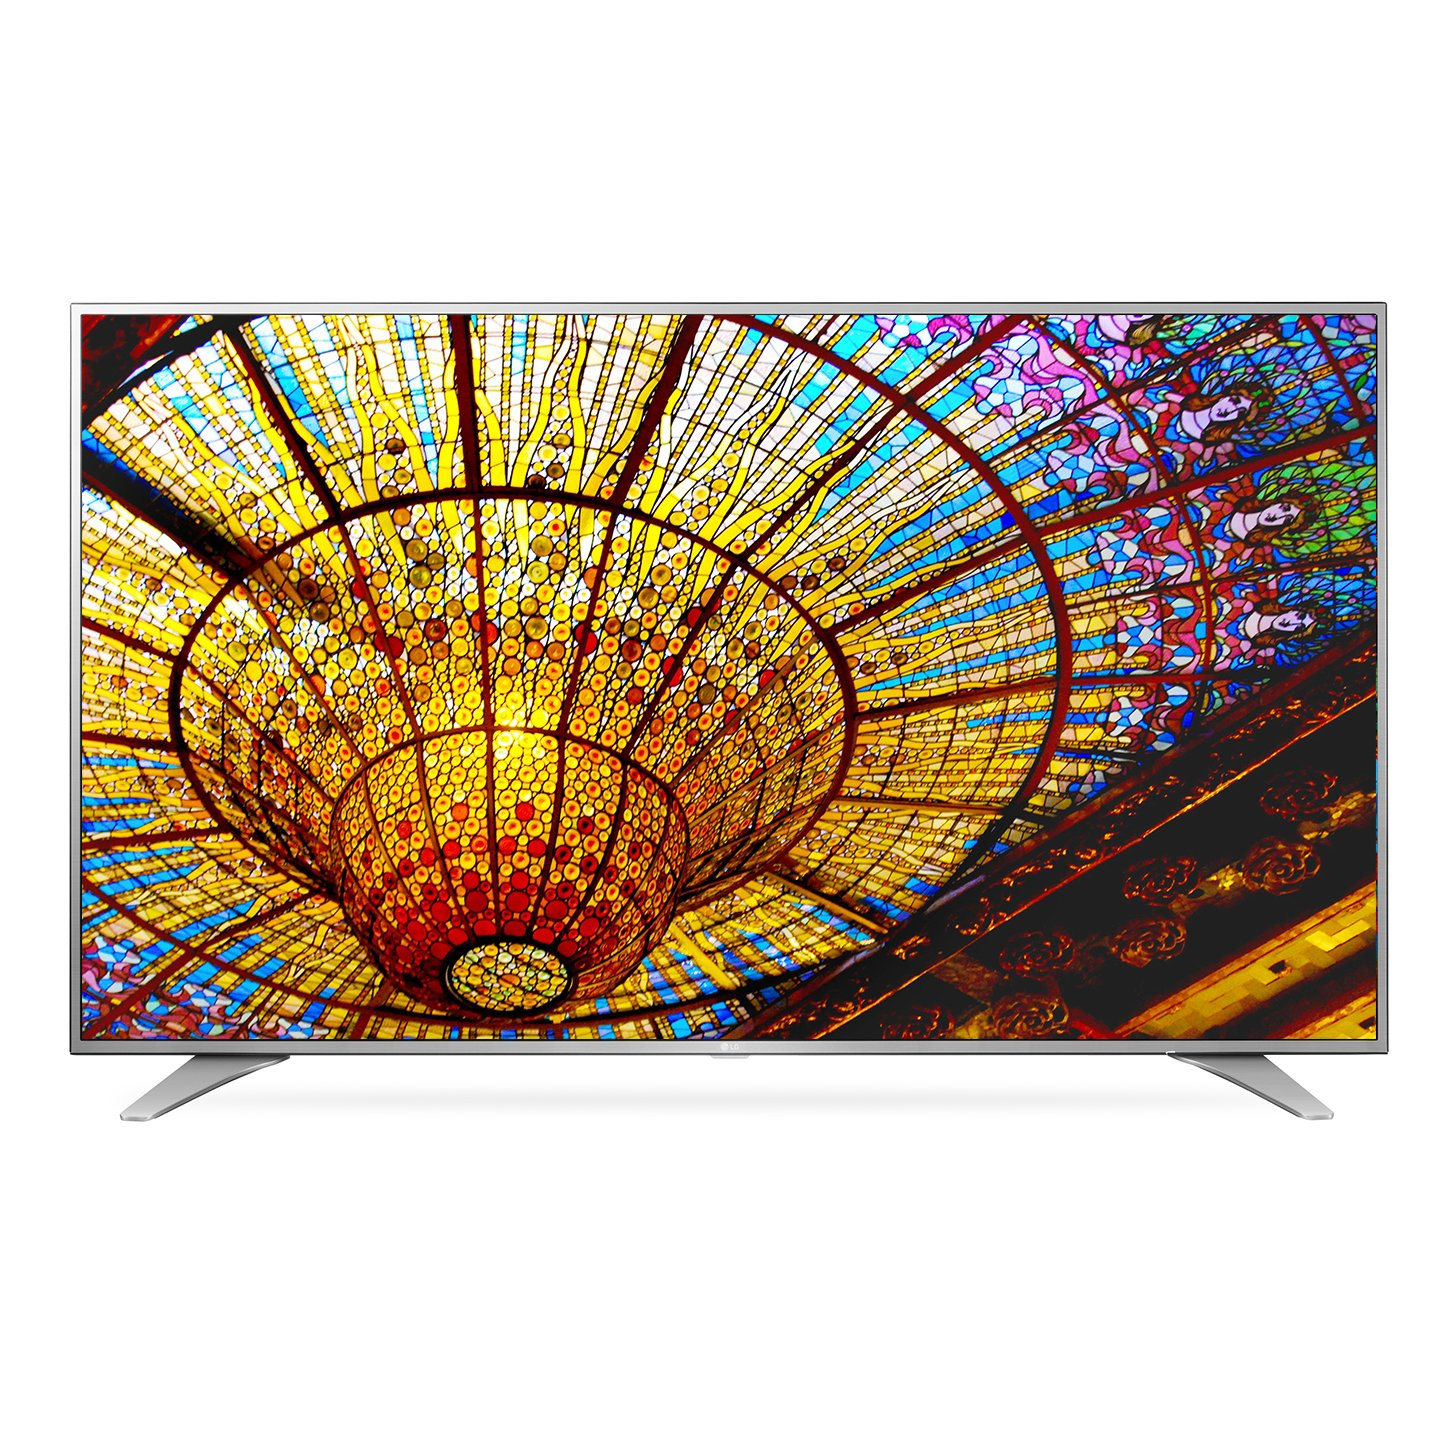 LG Electronics 60UH6550 60-Inch 4K Ultra HD Smart LED TV (2016 Model)